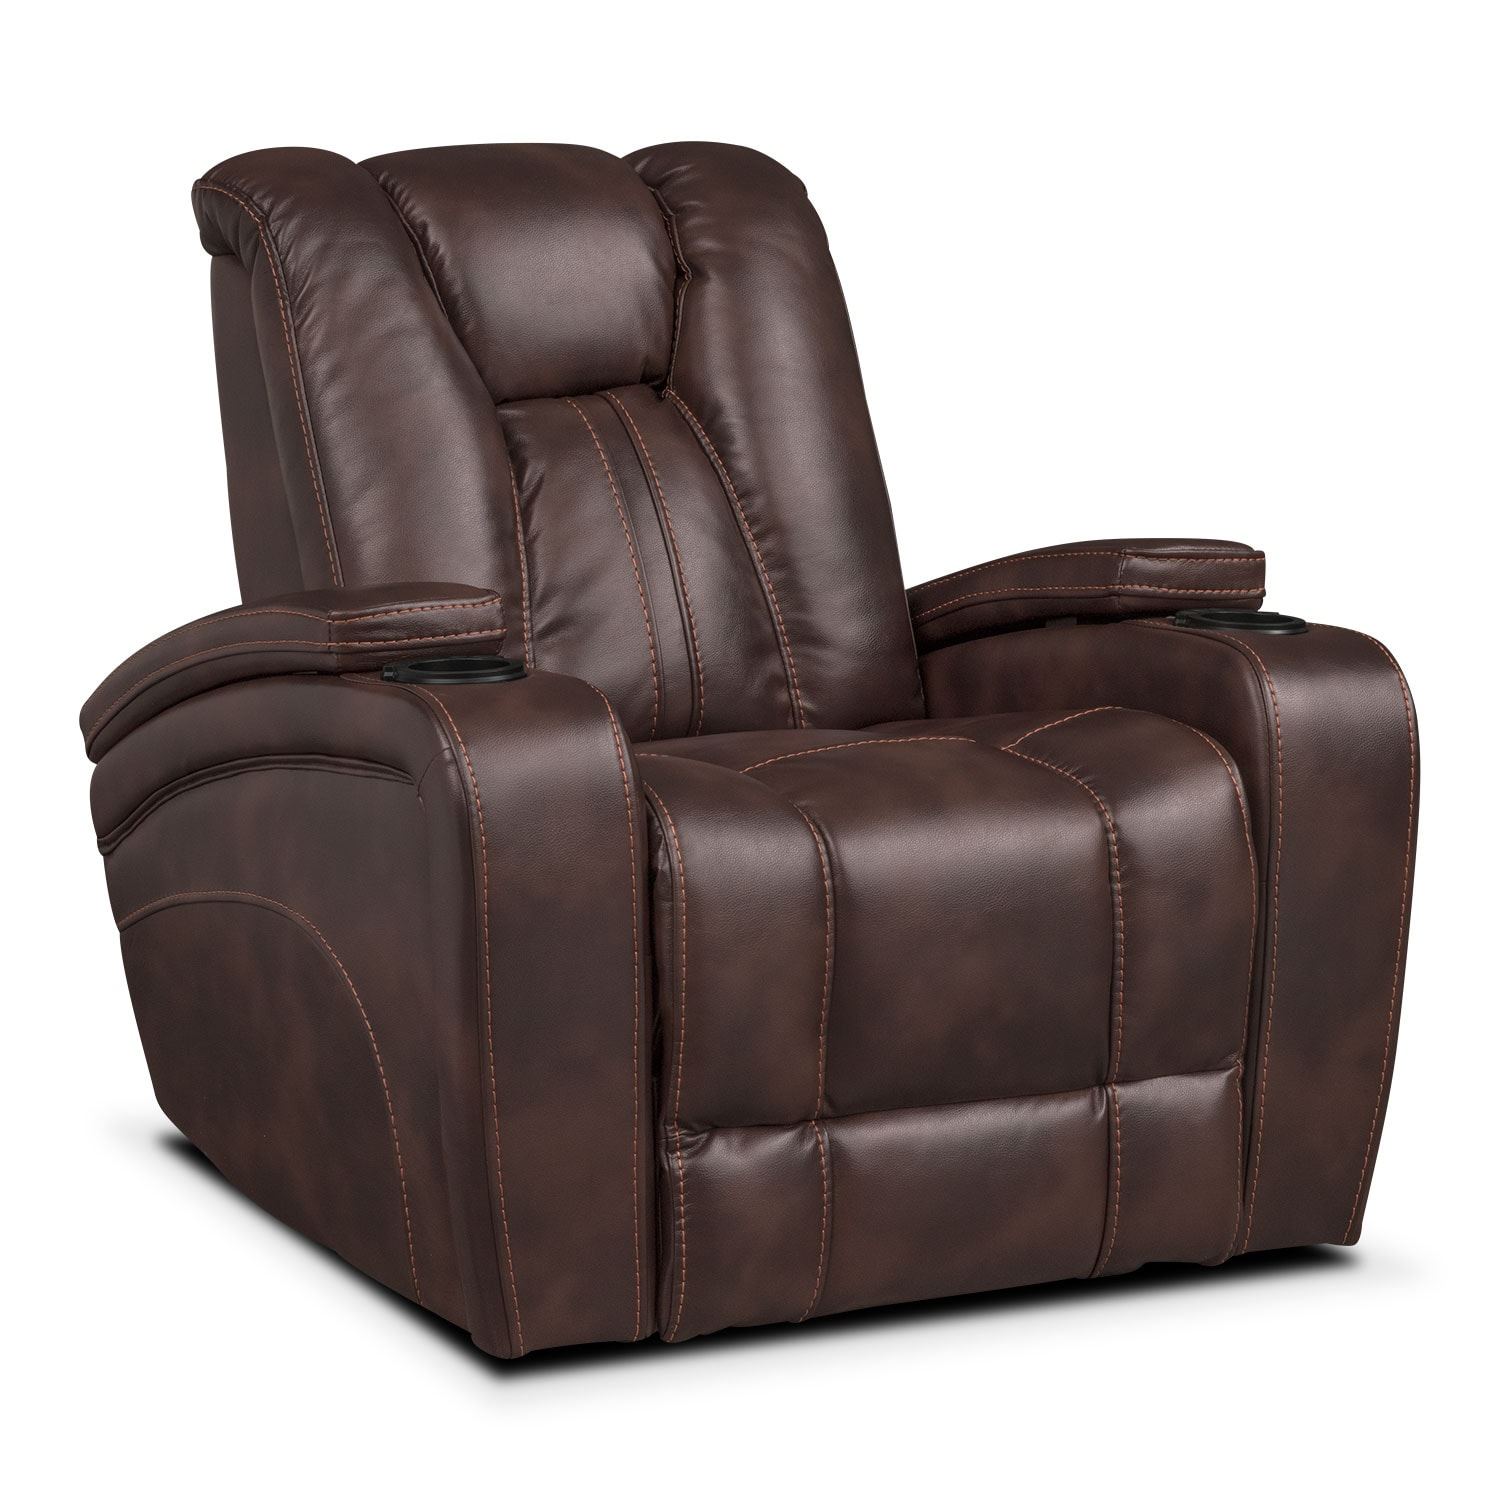 Power Reclining Chairs Pulsar Dual Power Reclining Sofa And Power Recliner Set